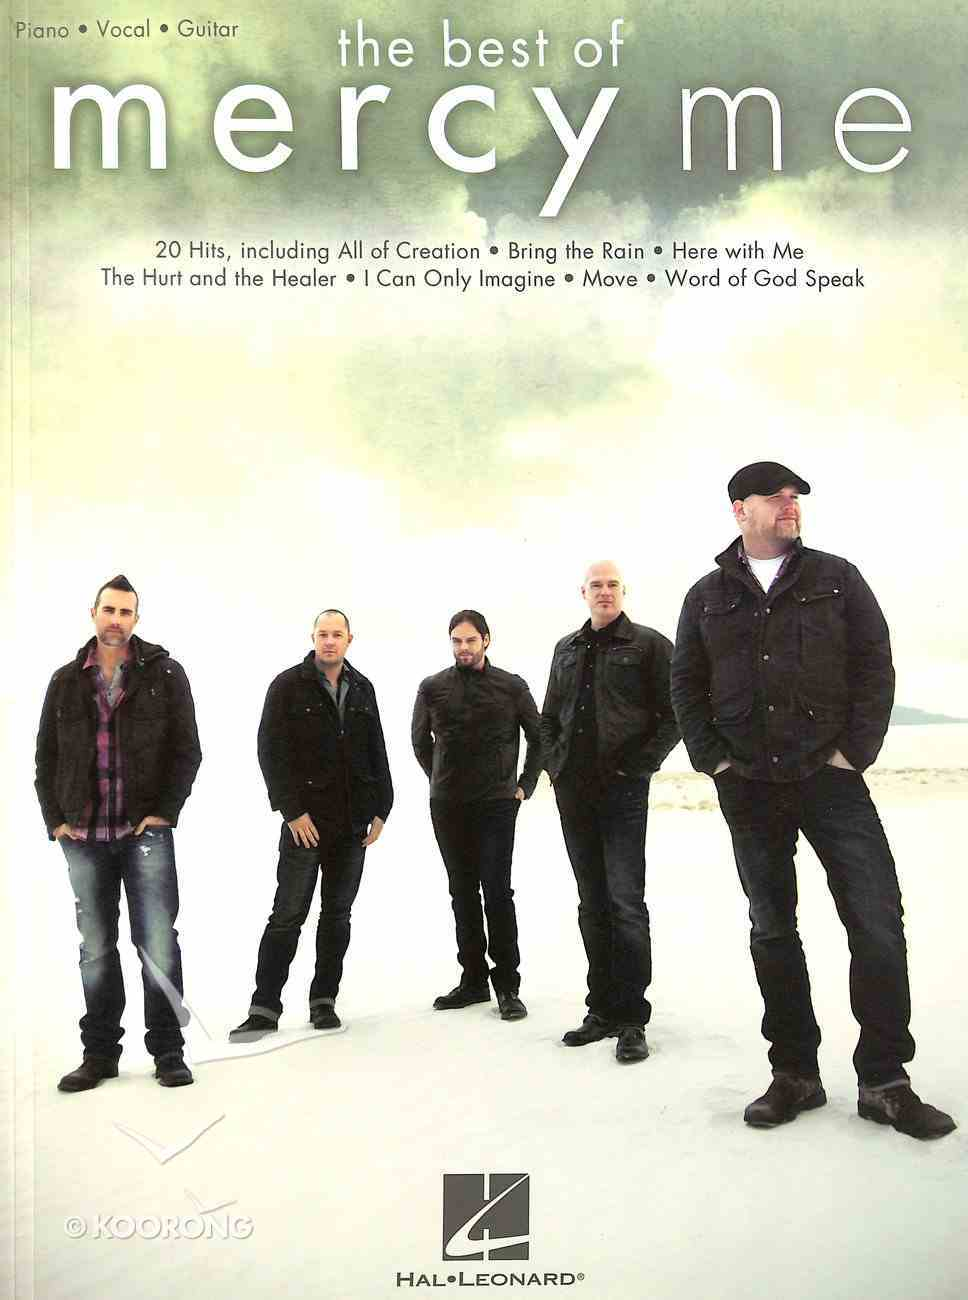 Best of Mercyme, the (Music Book) (Piano, Vocal & Guitar) Paperback